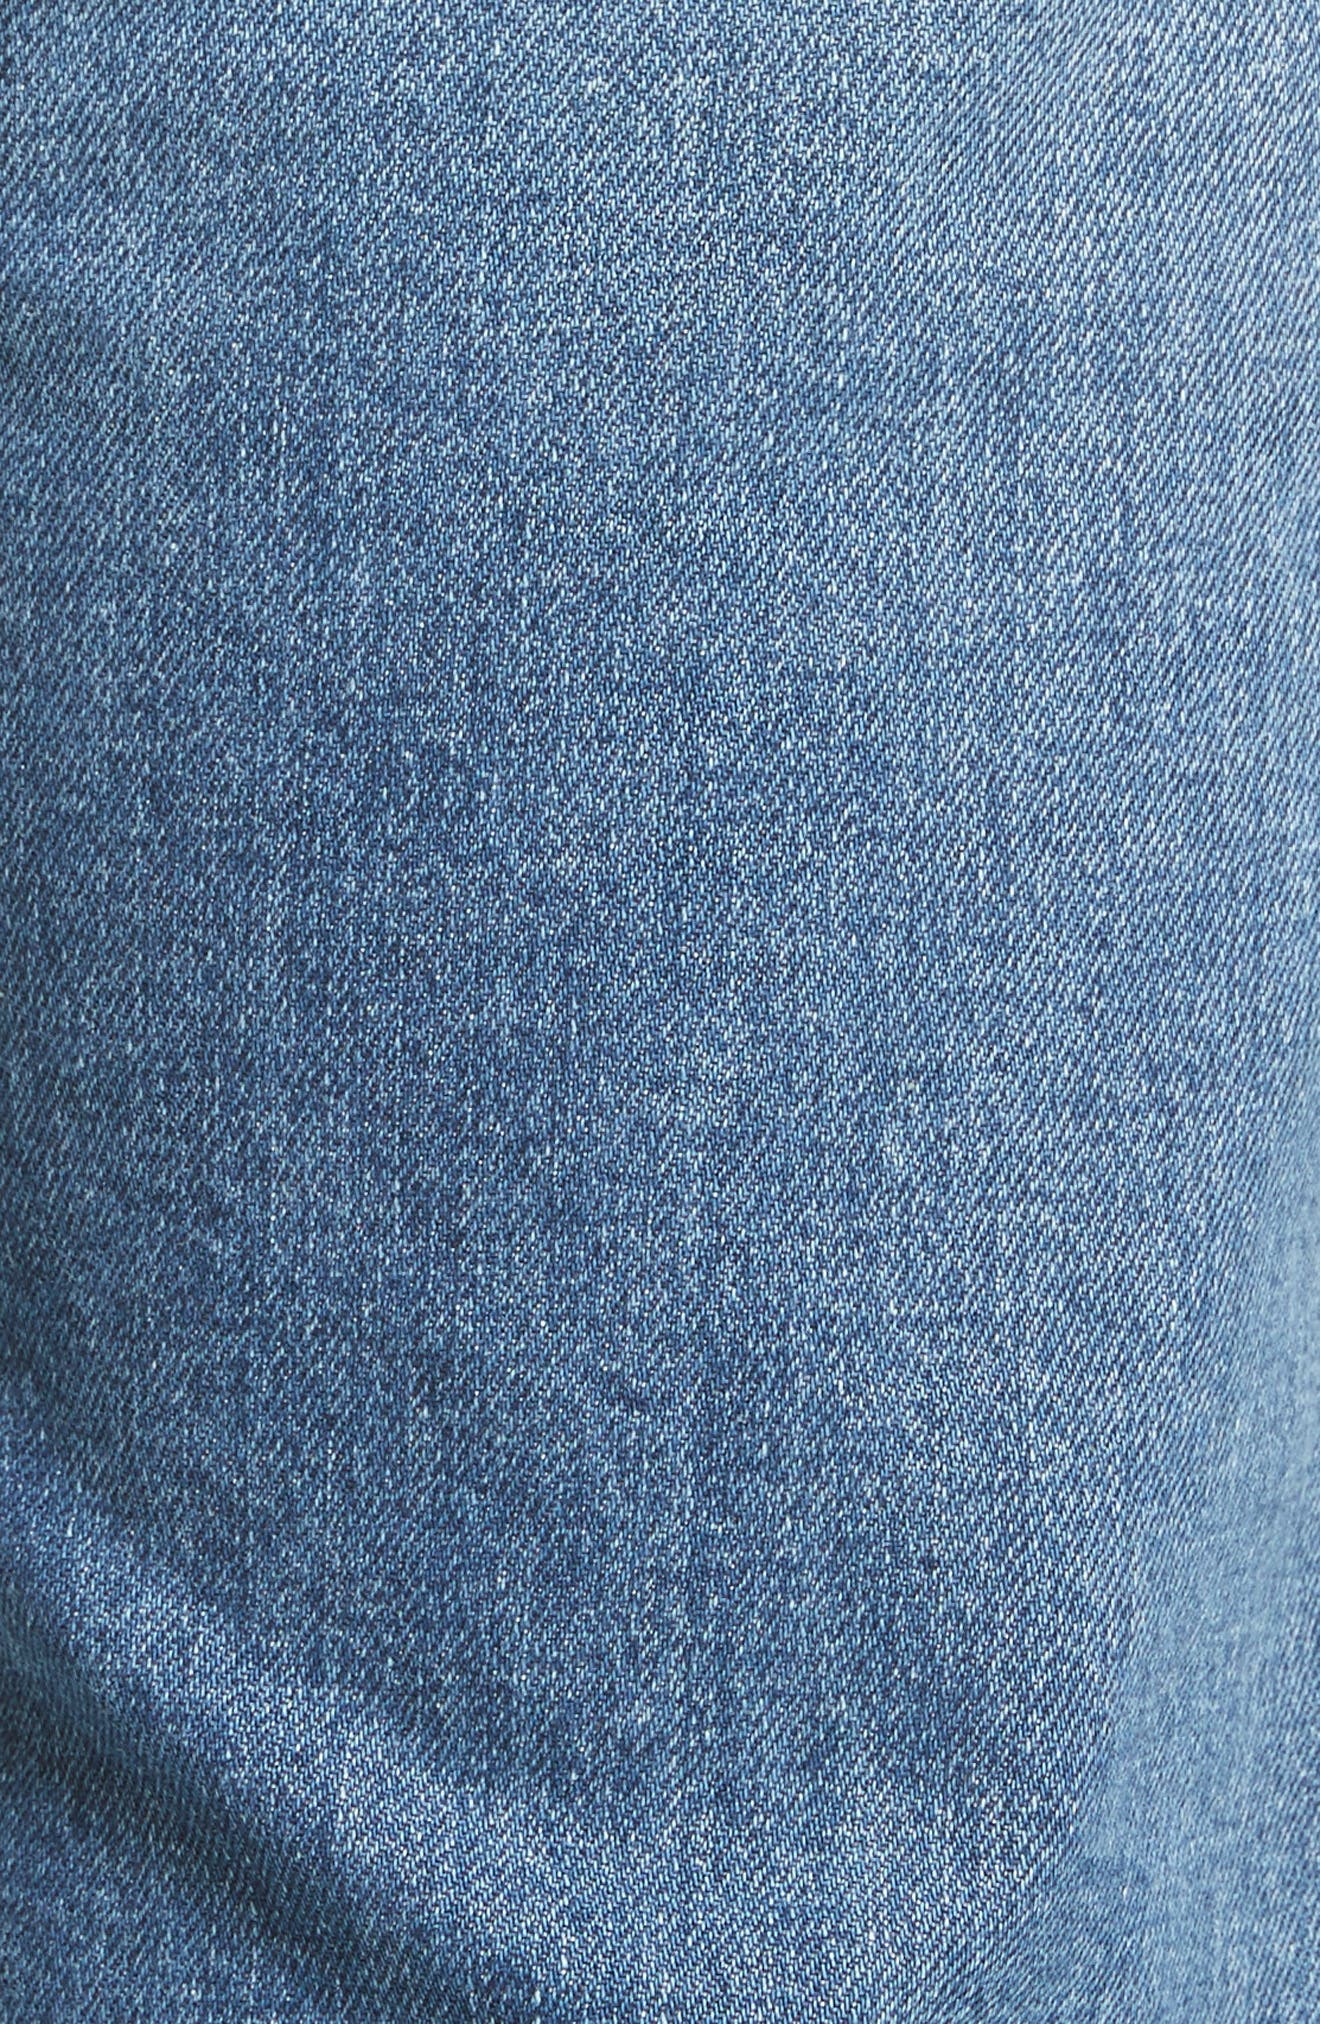 North Skinny Jeans,                             Alternate thumbnail 5, color,                             420